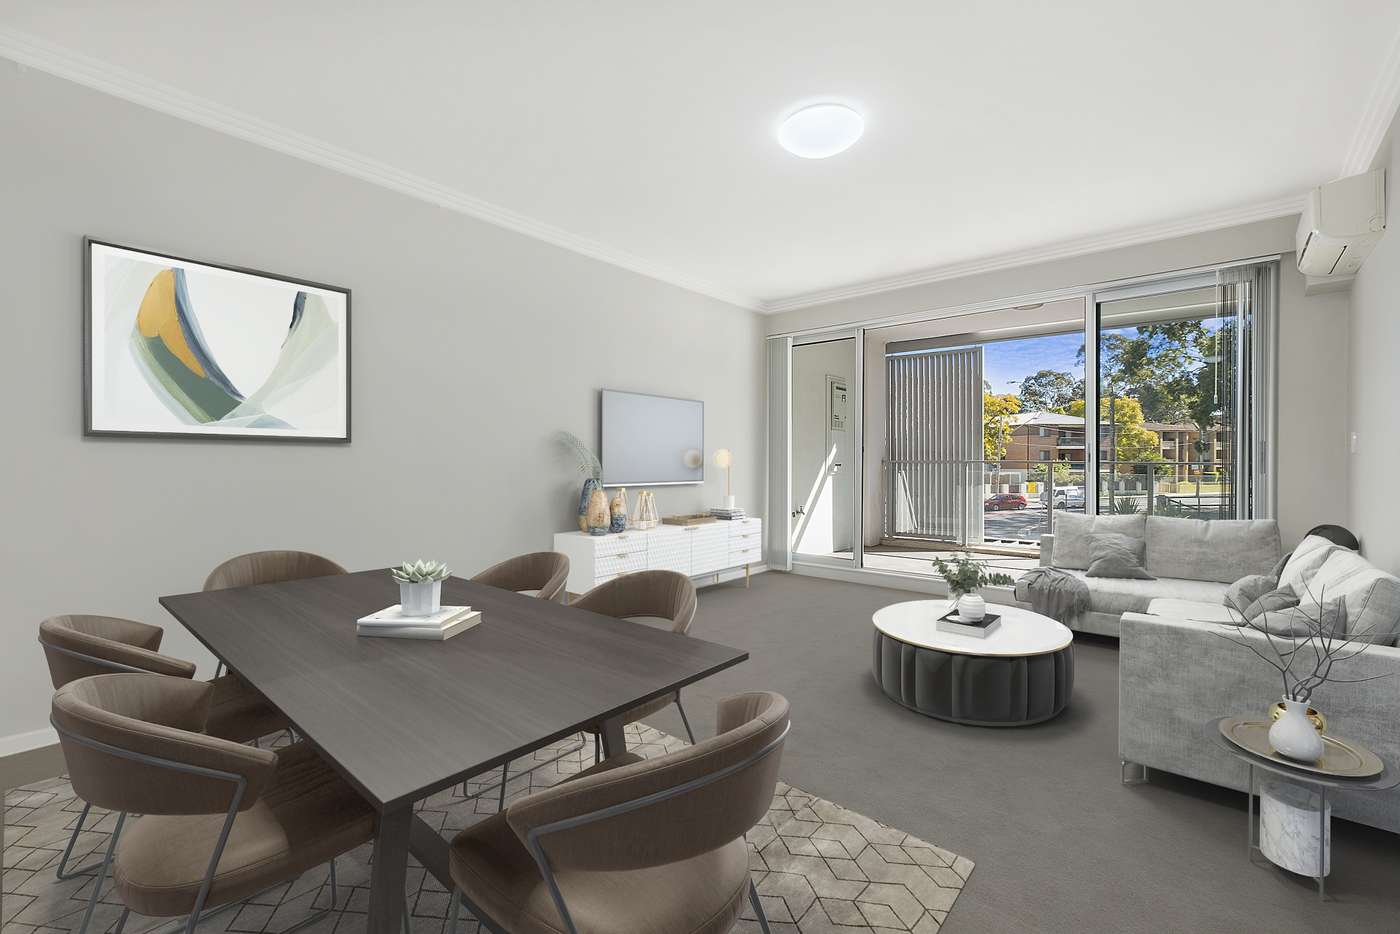 Main view of Homely apartment listing, 37/34 Albert Street, North Parramatta NSW 2151